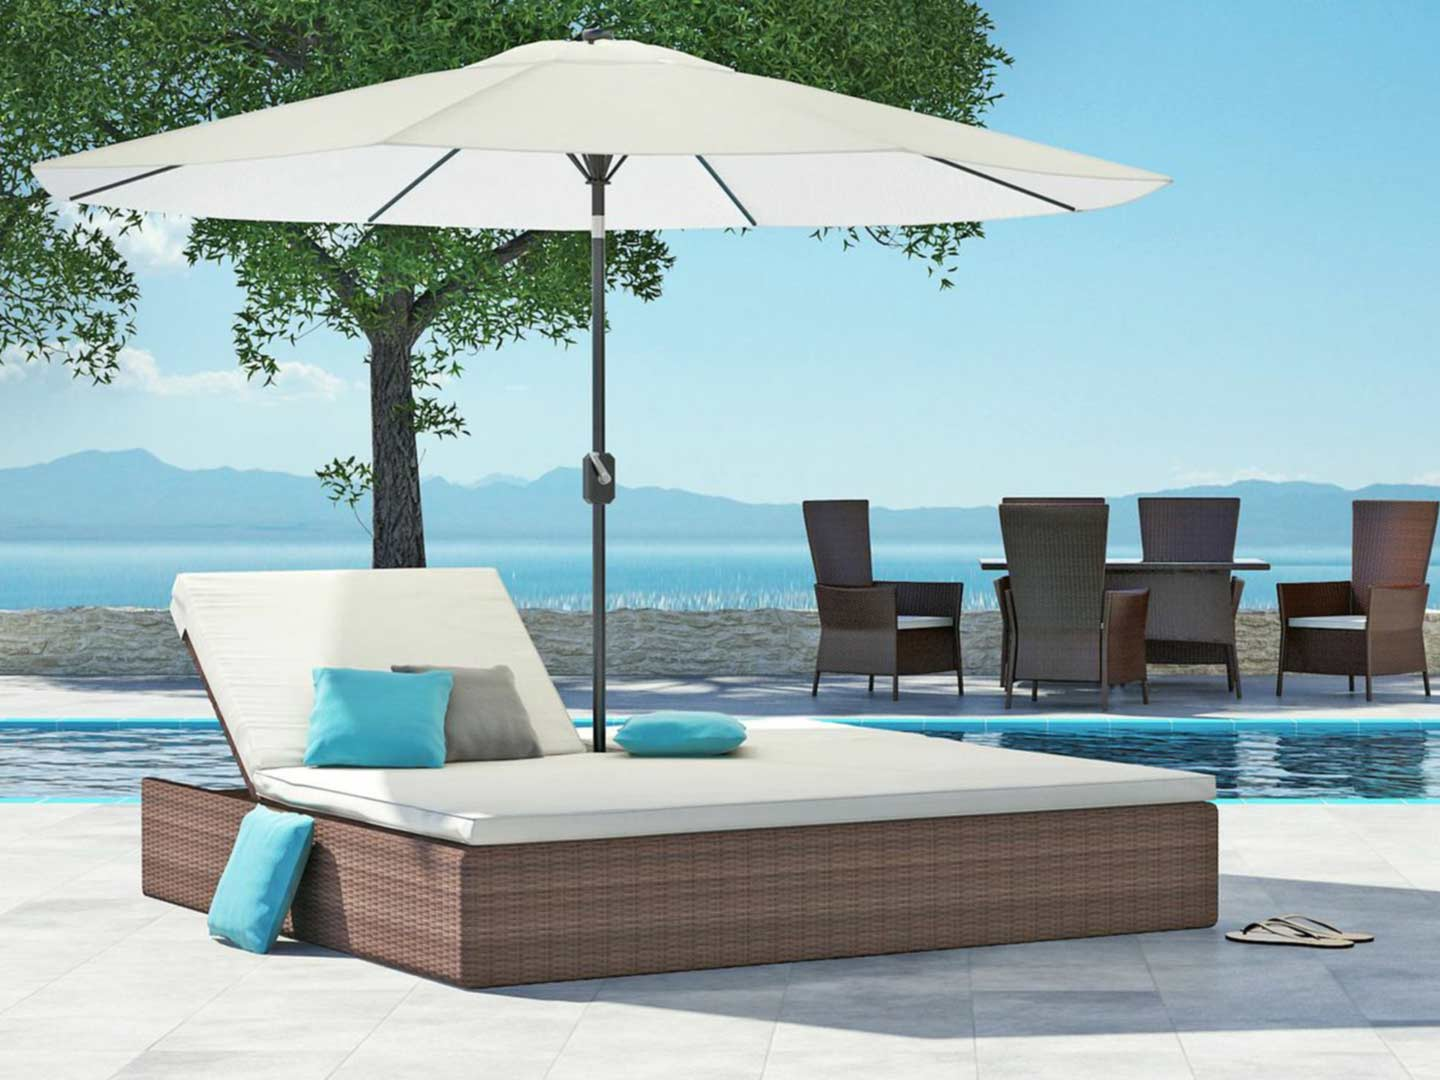 artelia fr bain de soleil double avec parasol sunrise. Black Bedroom Furniture Sets. Home Design Ideas